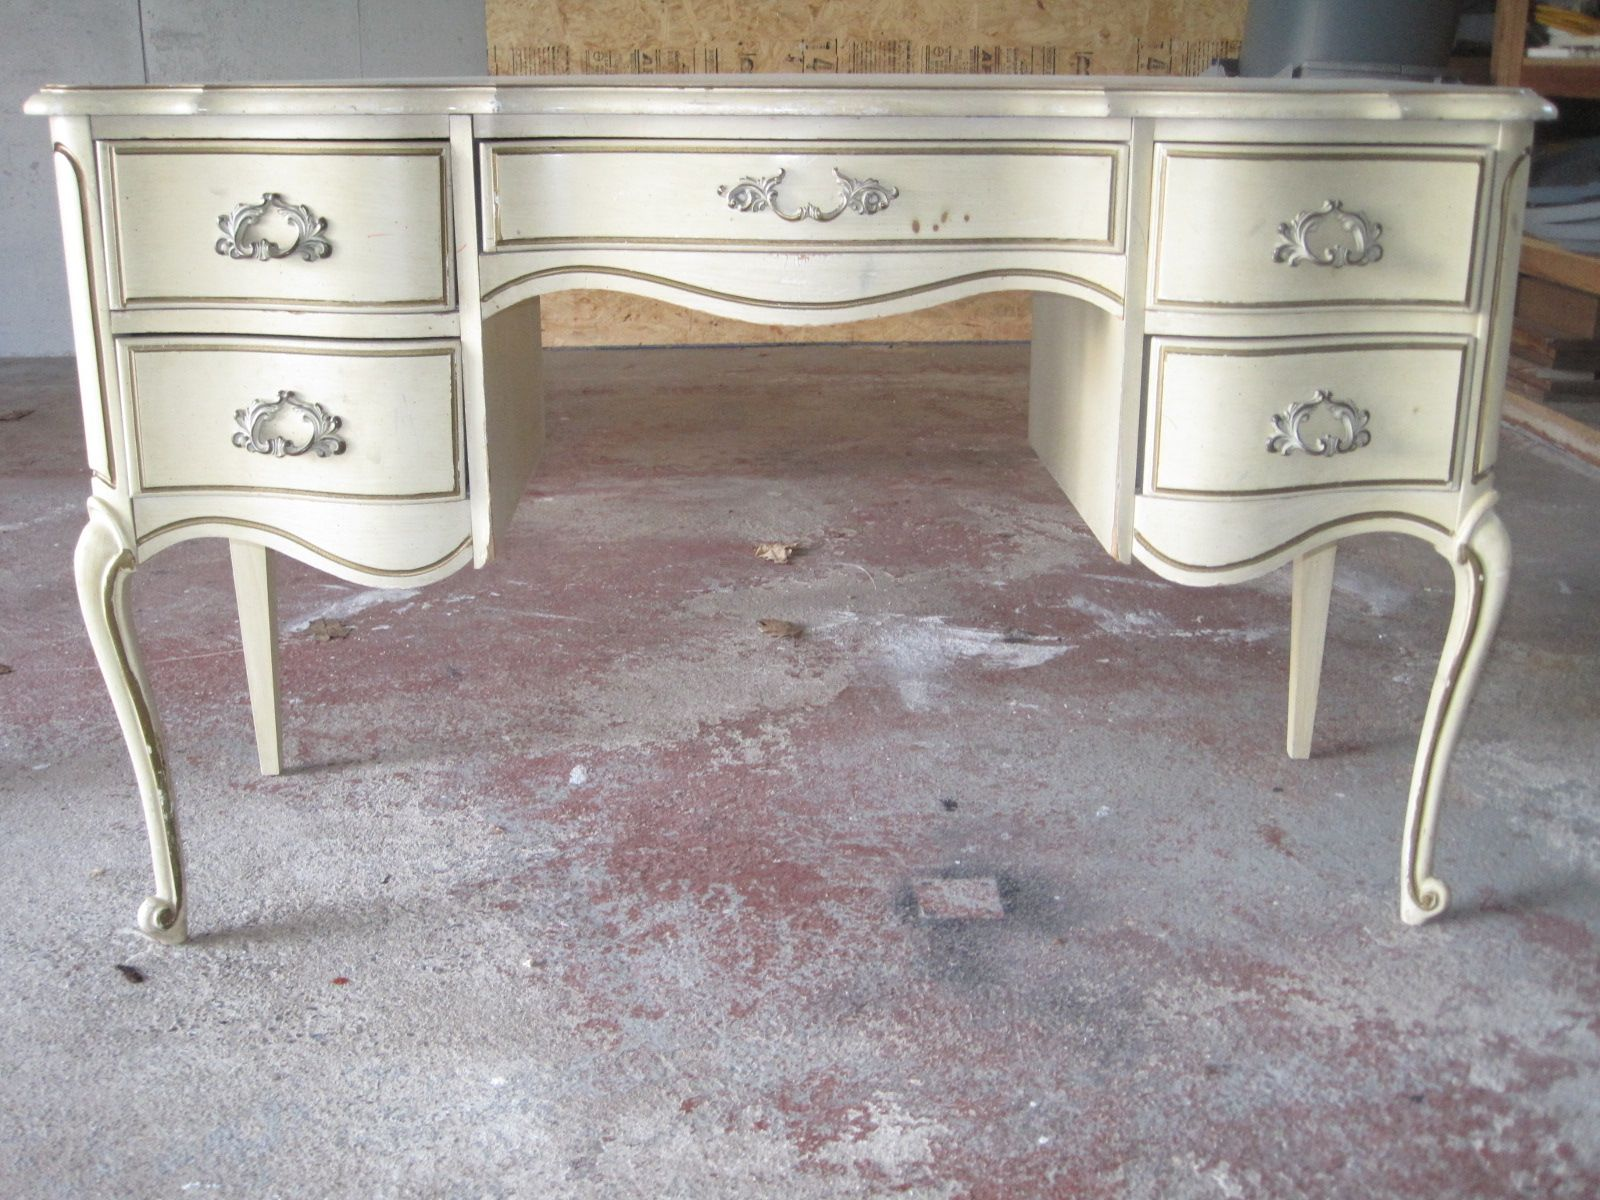 How To Spray Paint Wooden Furniture | Muebles y Aerosoles